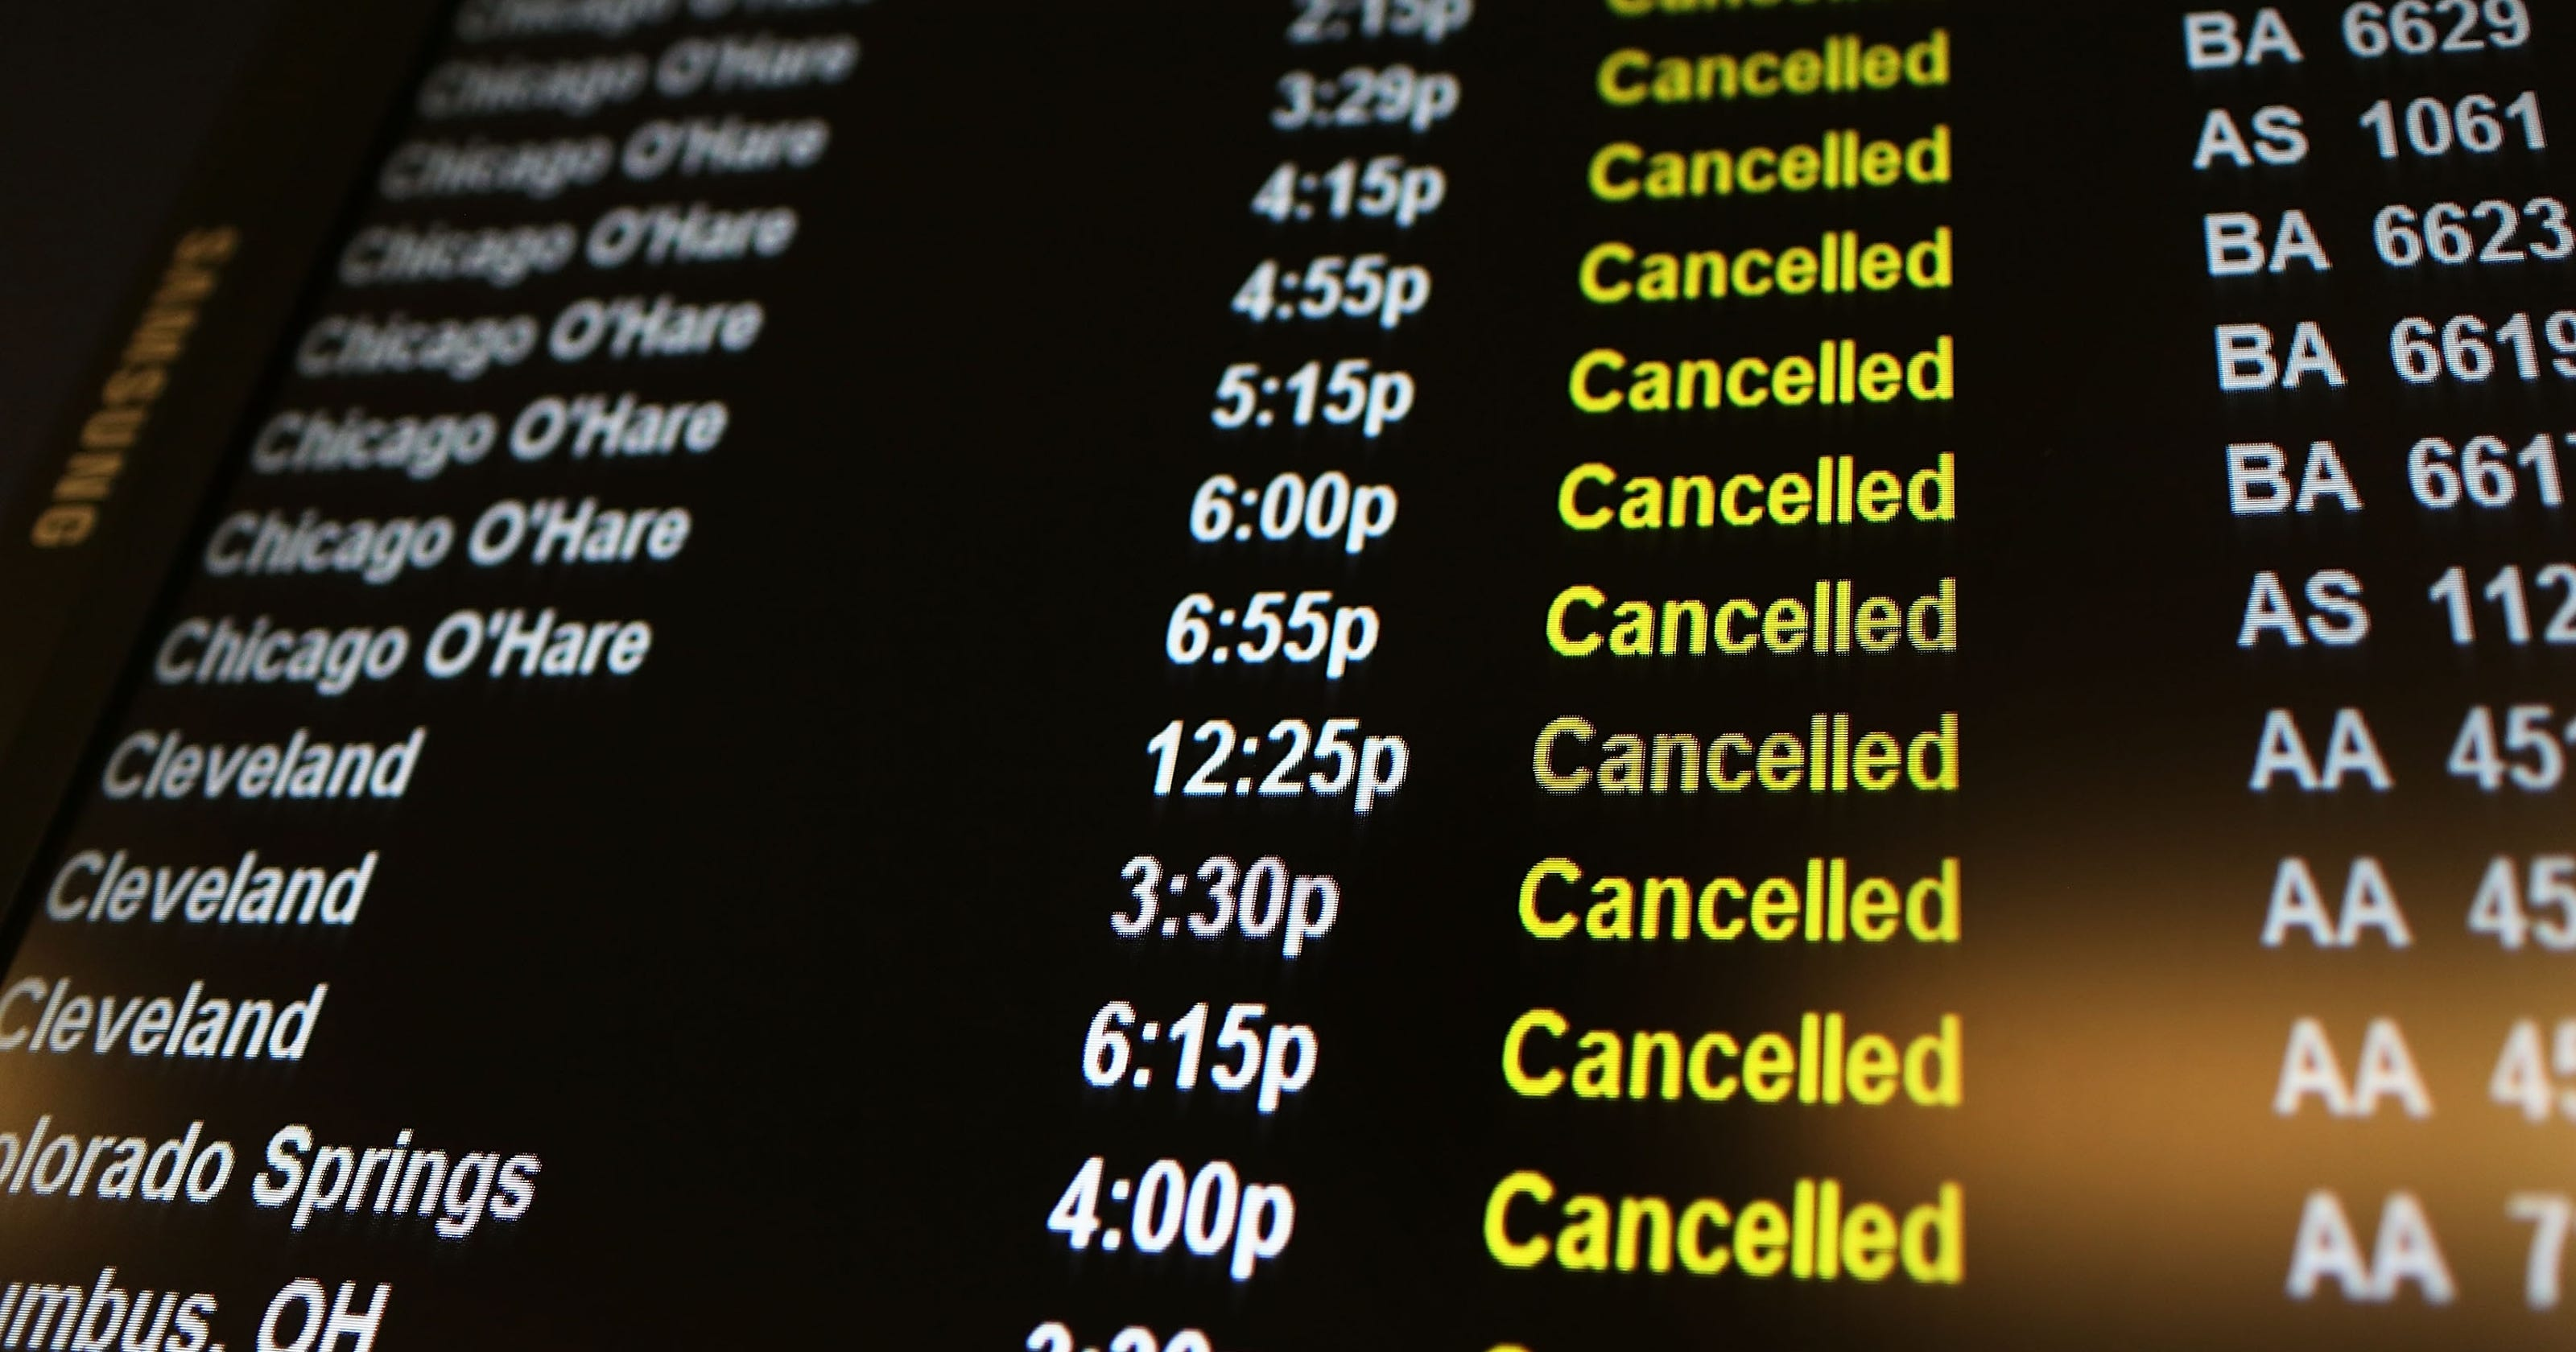 Ask Air Traffic Control Dealing With Weather Delays